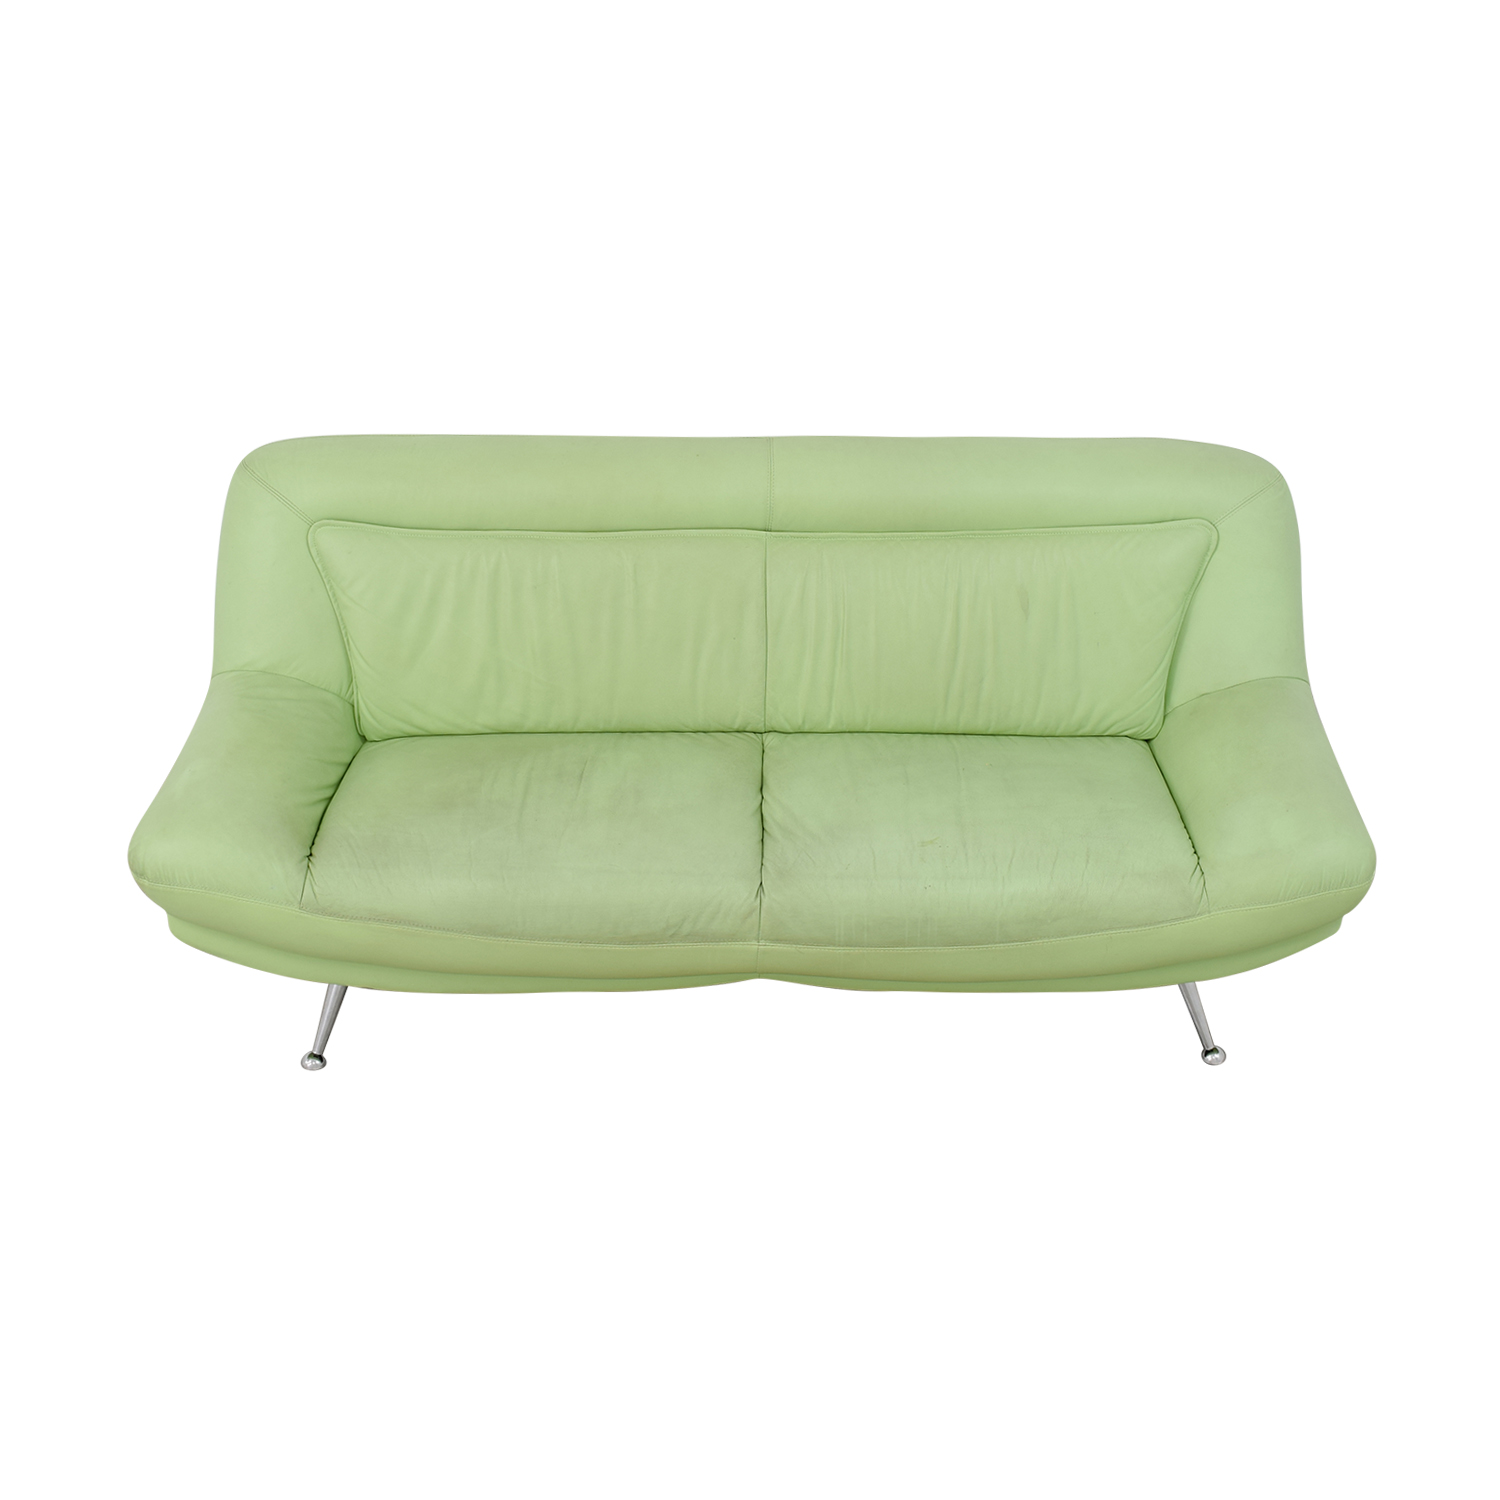 Italian Mint Green Leather Two-Cushion Sofa green